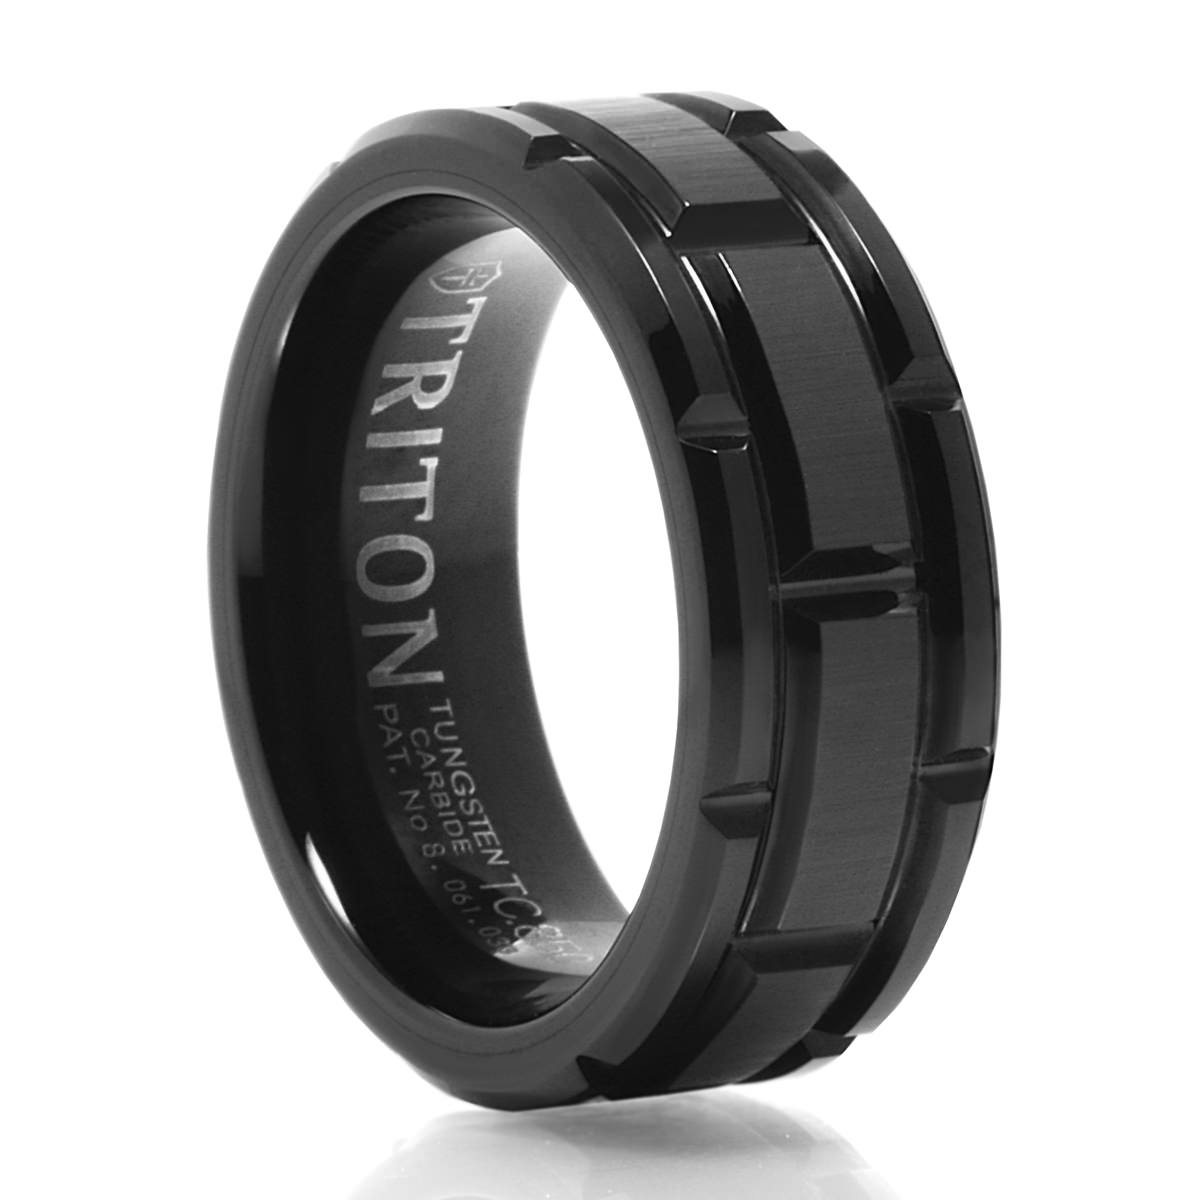 fort awesome triton band wedding ring of fit elegant s from carbide macy men rings tungsten